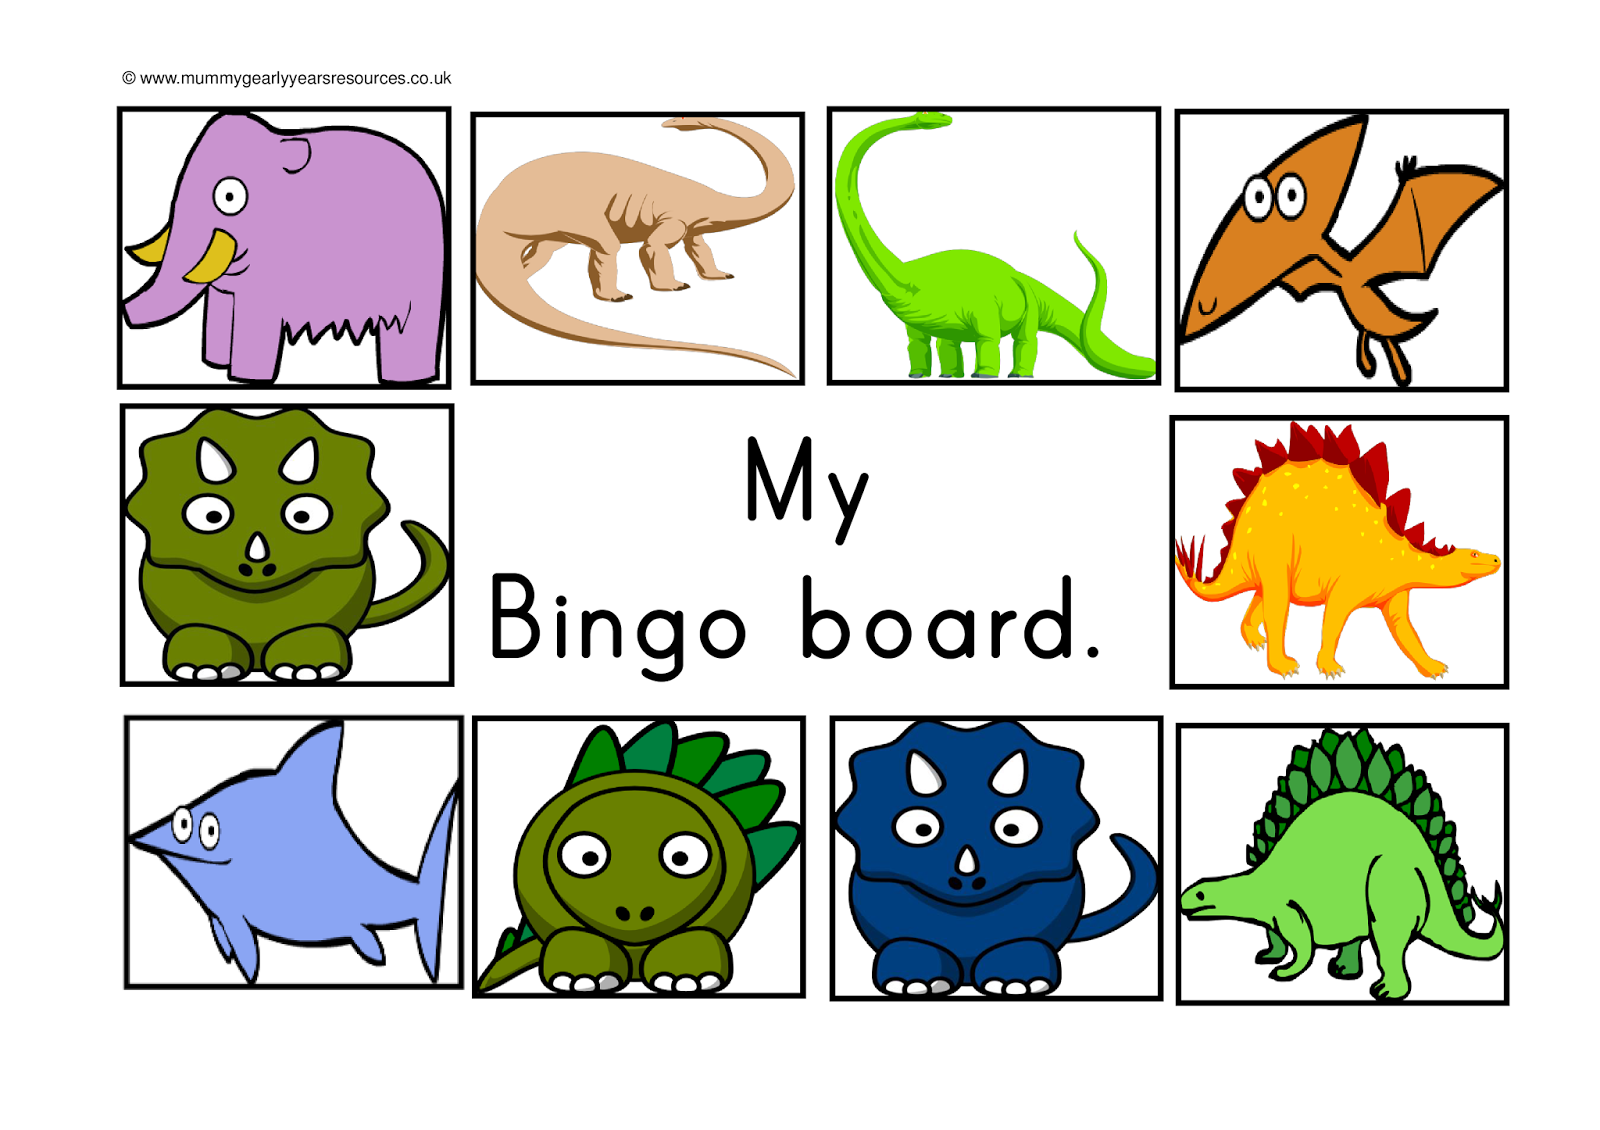 Mummy G Early Years Resources Dinosaur Bingo Game